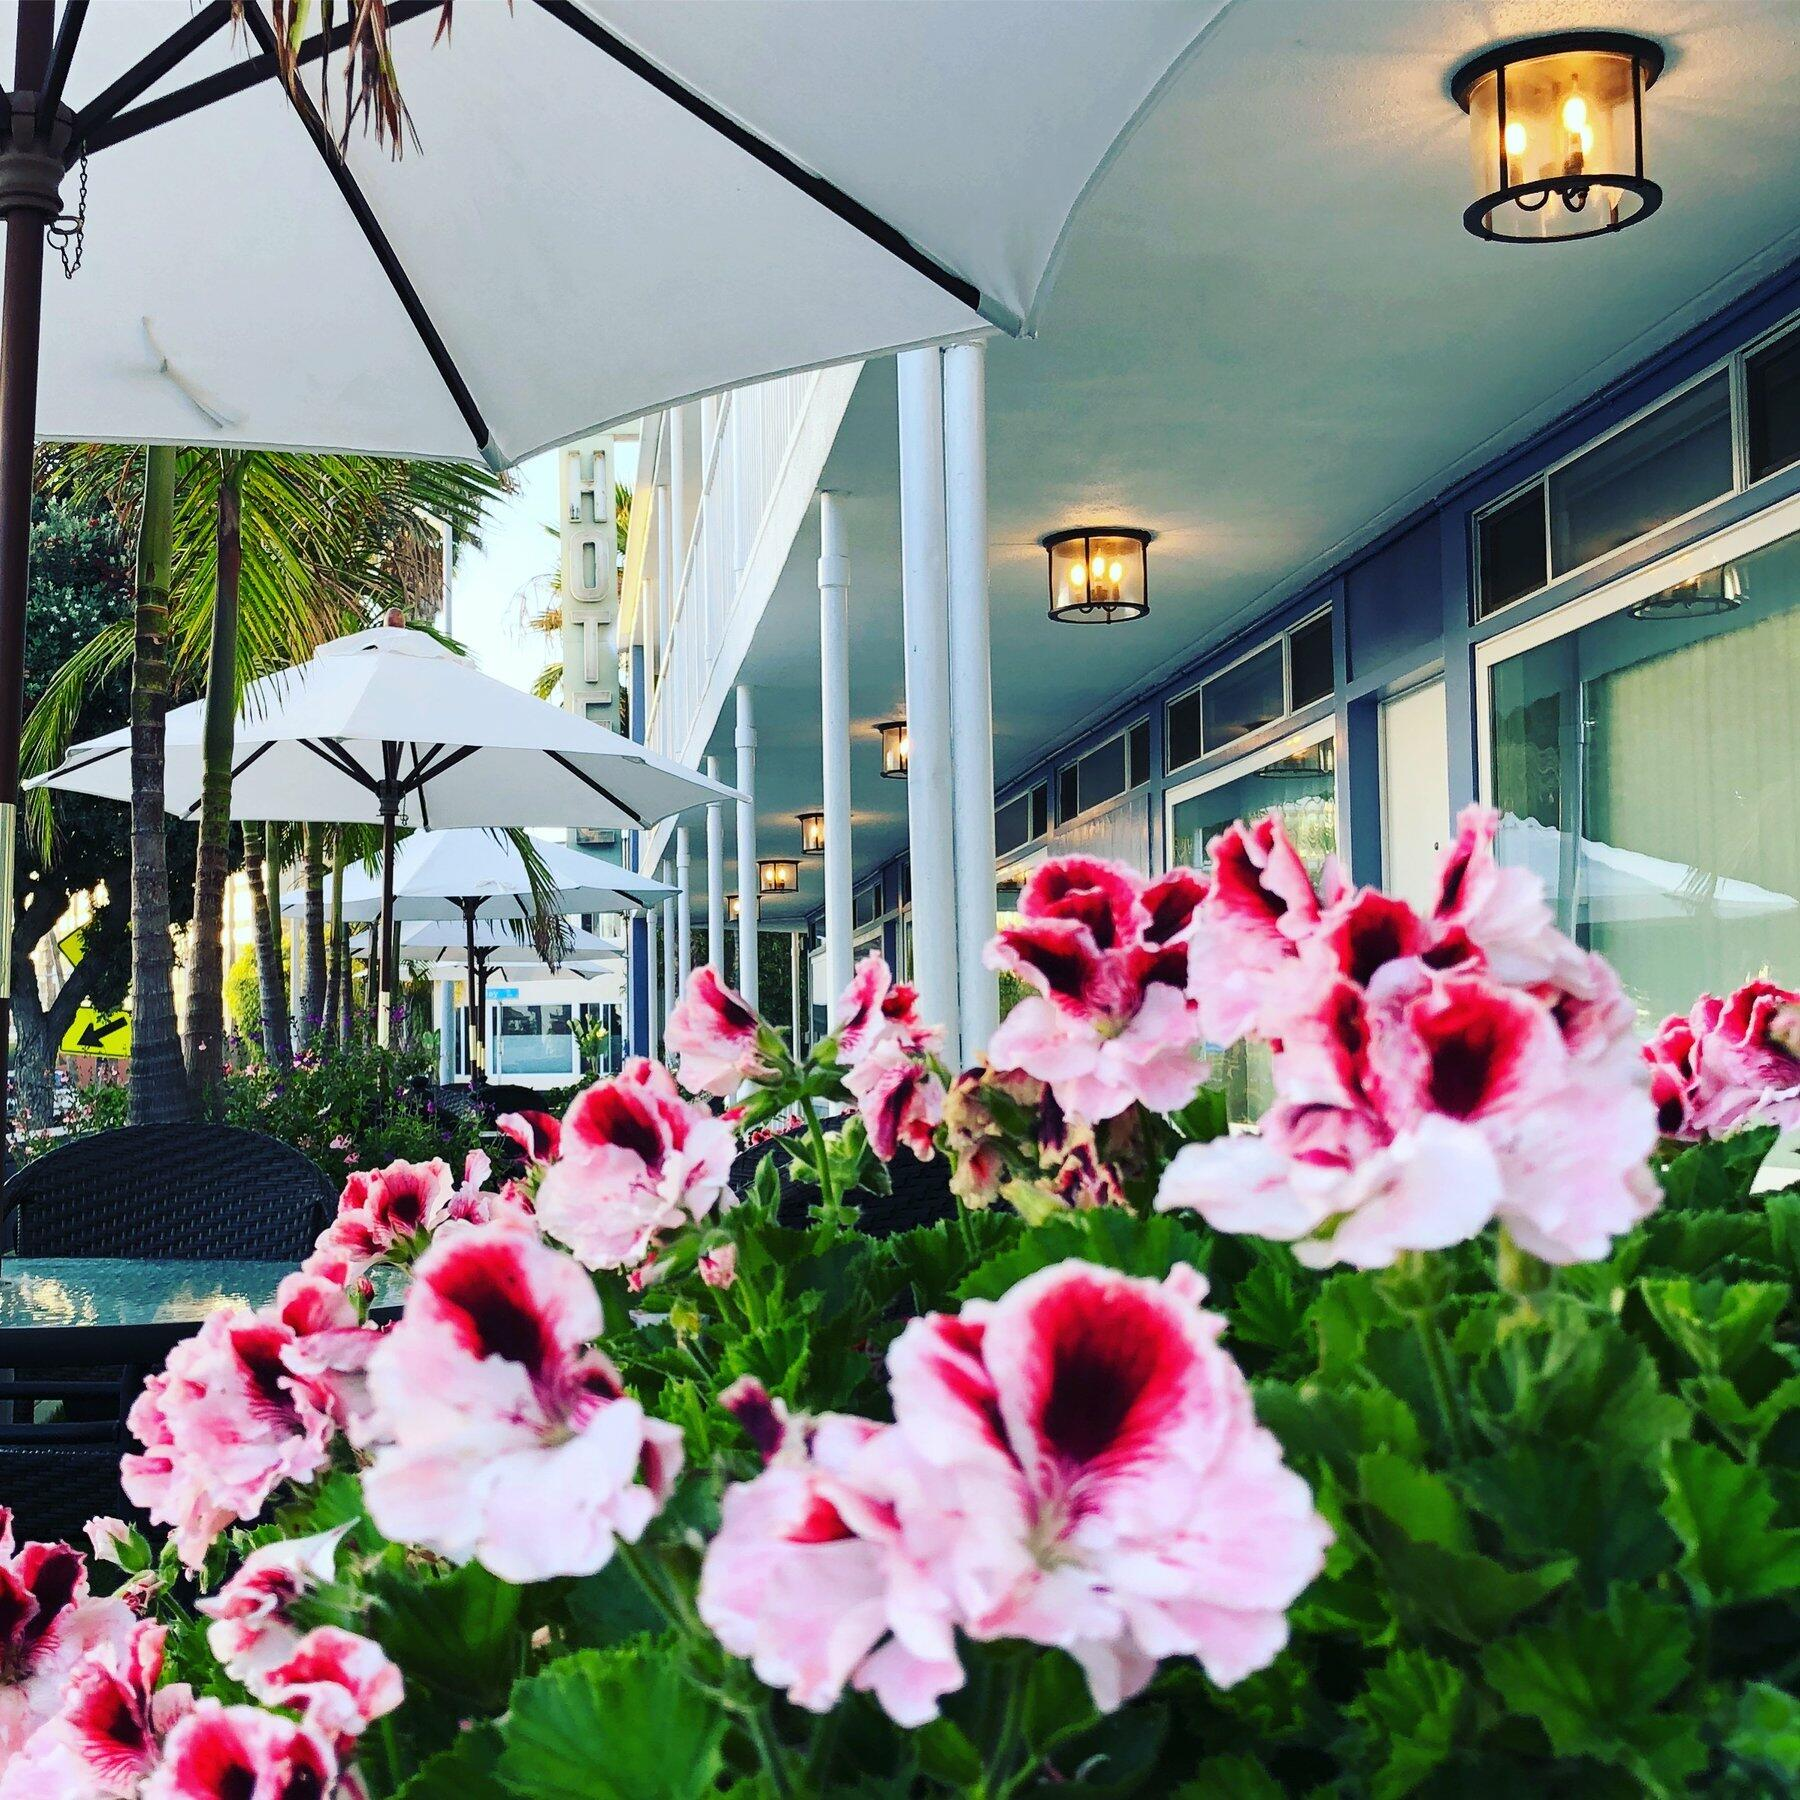 Exterior of hotel with umbrellas and flowers